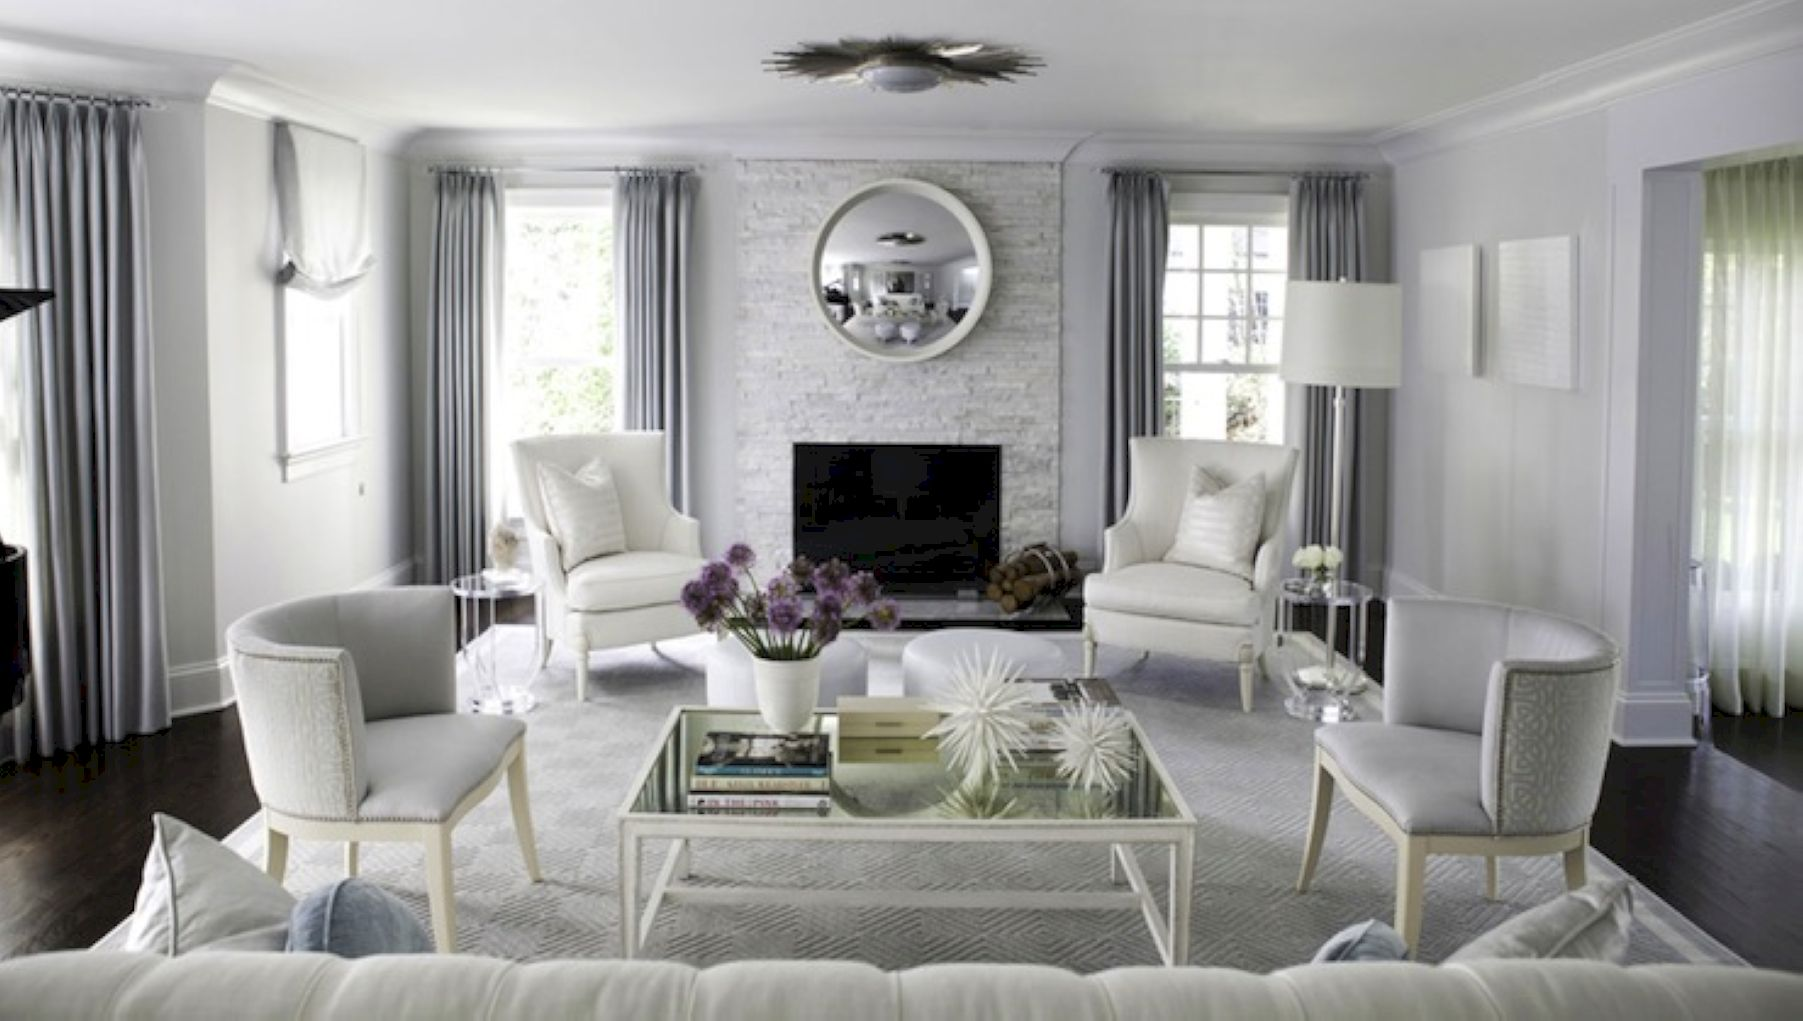 70 Stunning Gray and White Living Room Decor Ideas - ROUNDECOR